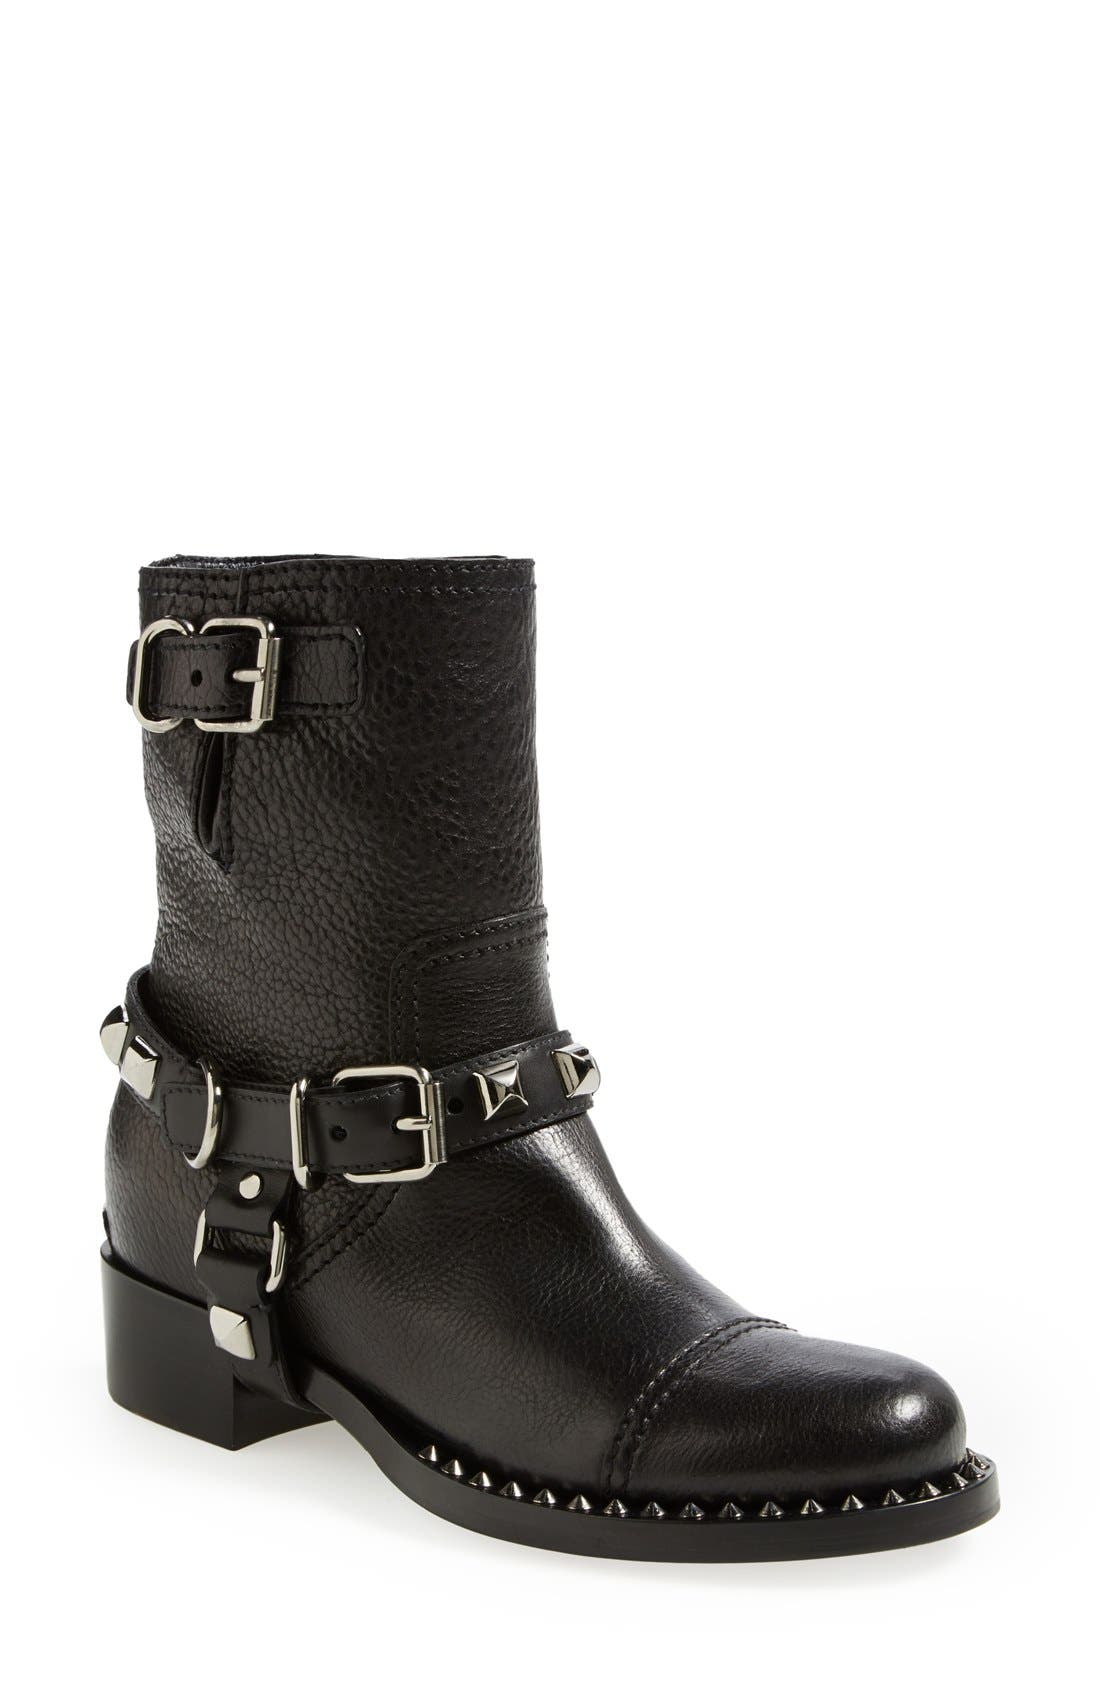 Main Image - Miu Miu Studded Harness Moto Boot (Women)